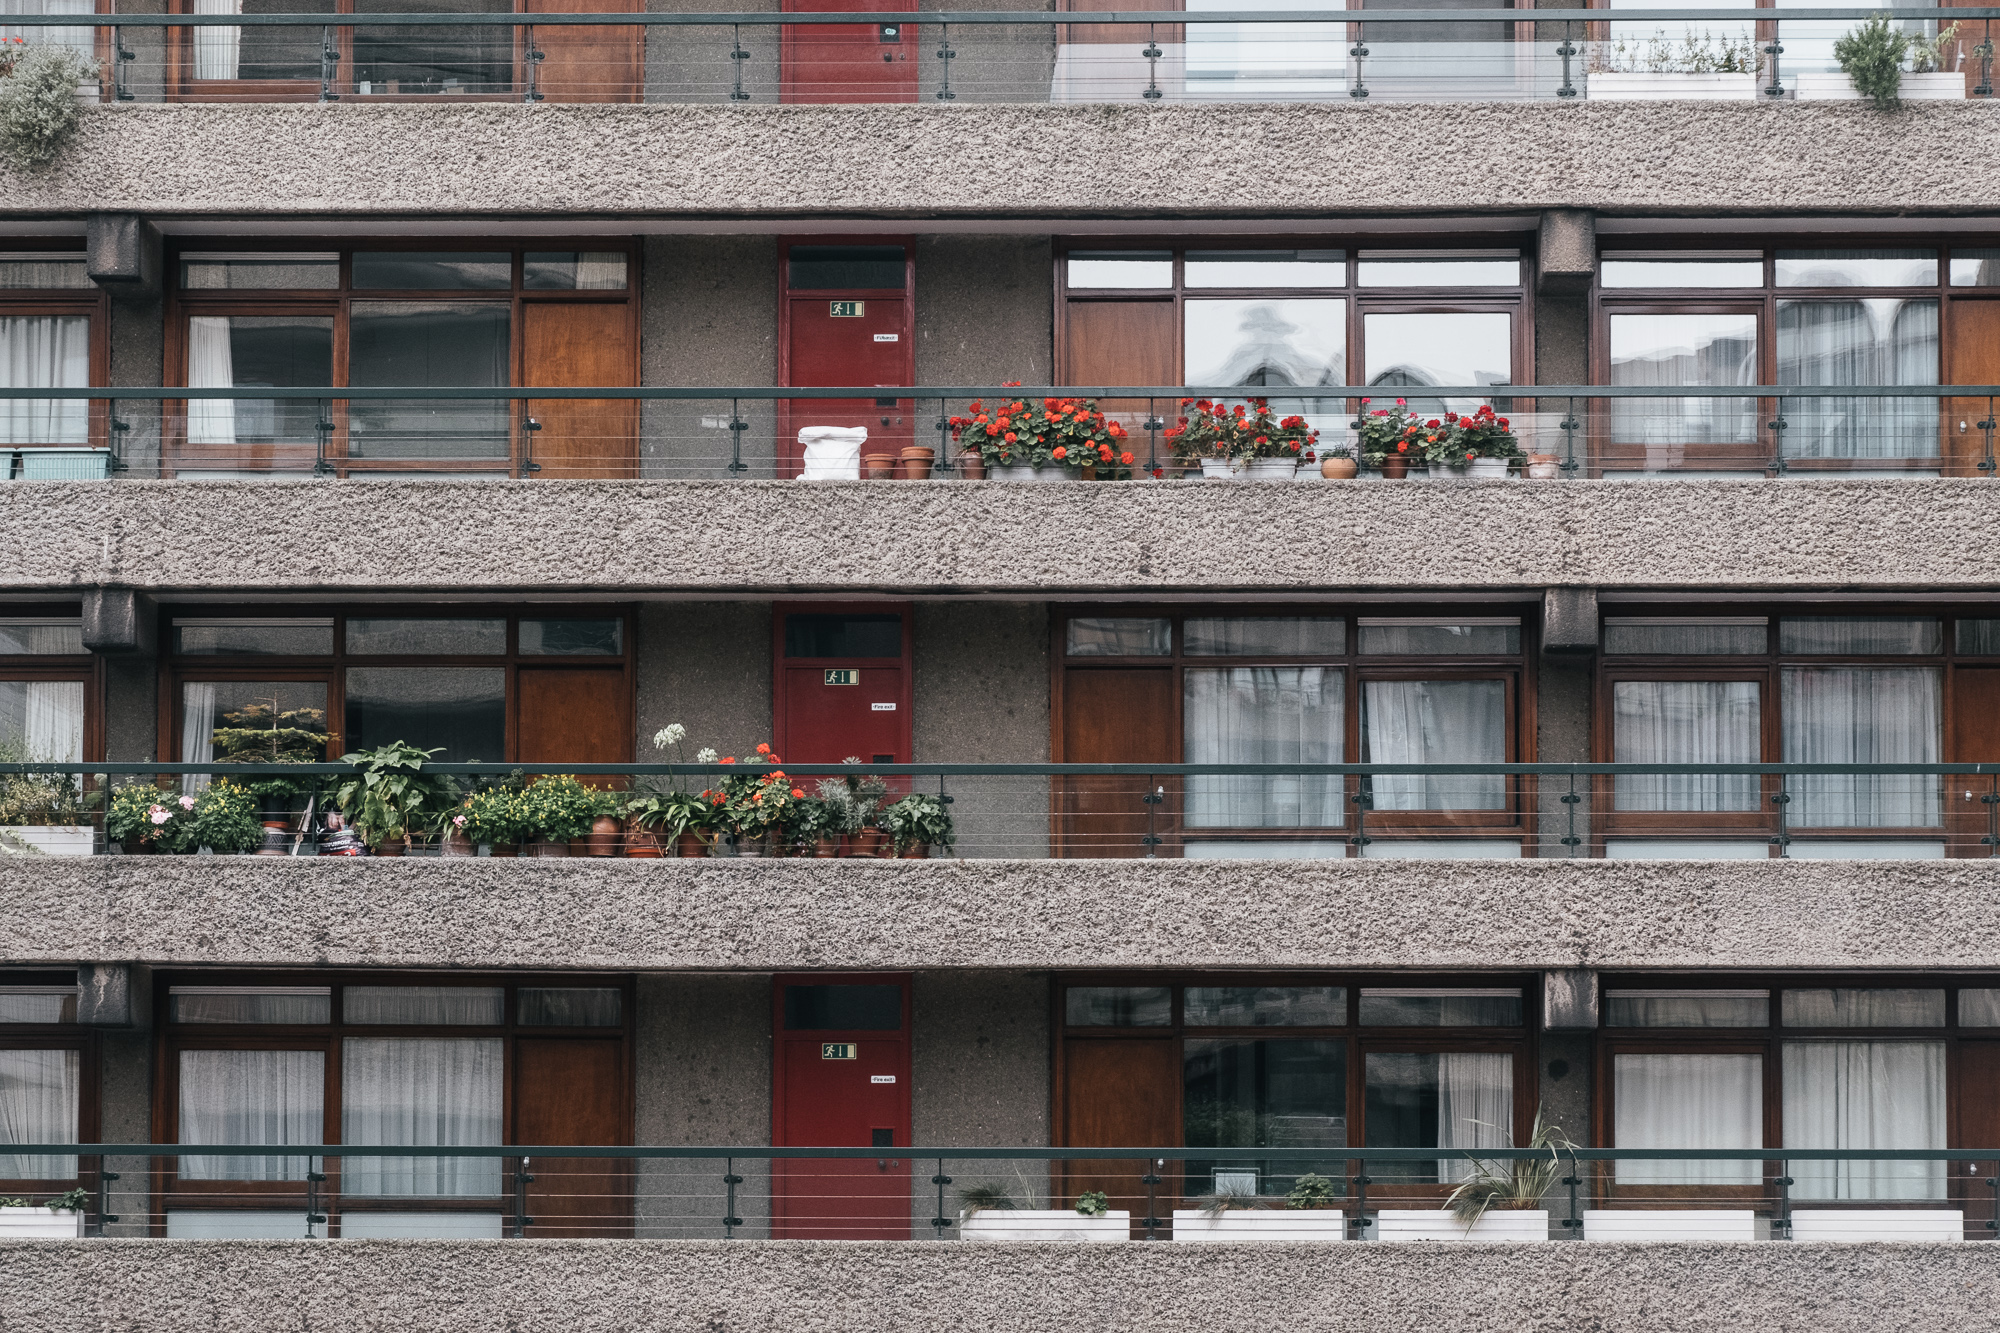 Barbican is not only the biggest art centre, but also a large residential estate